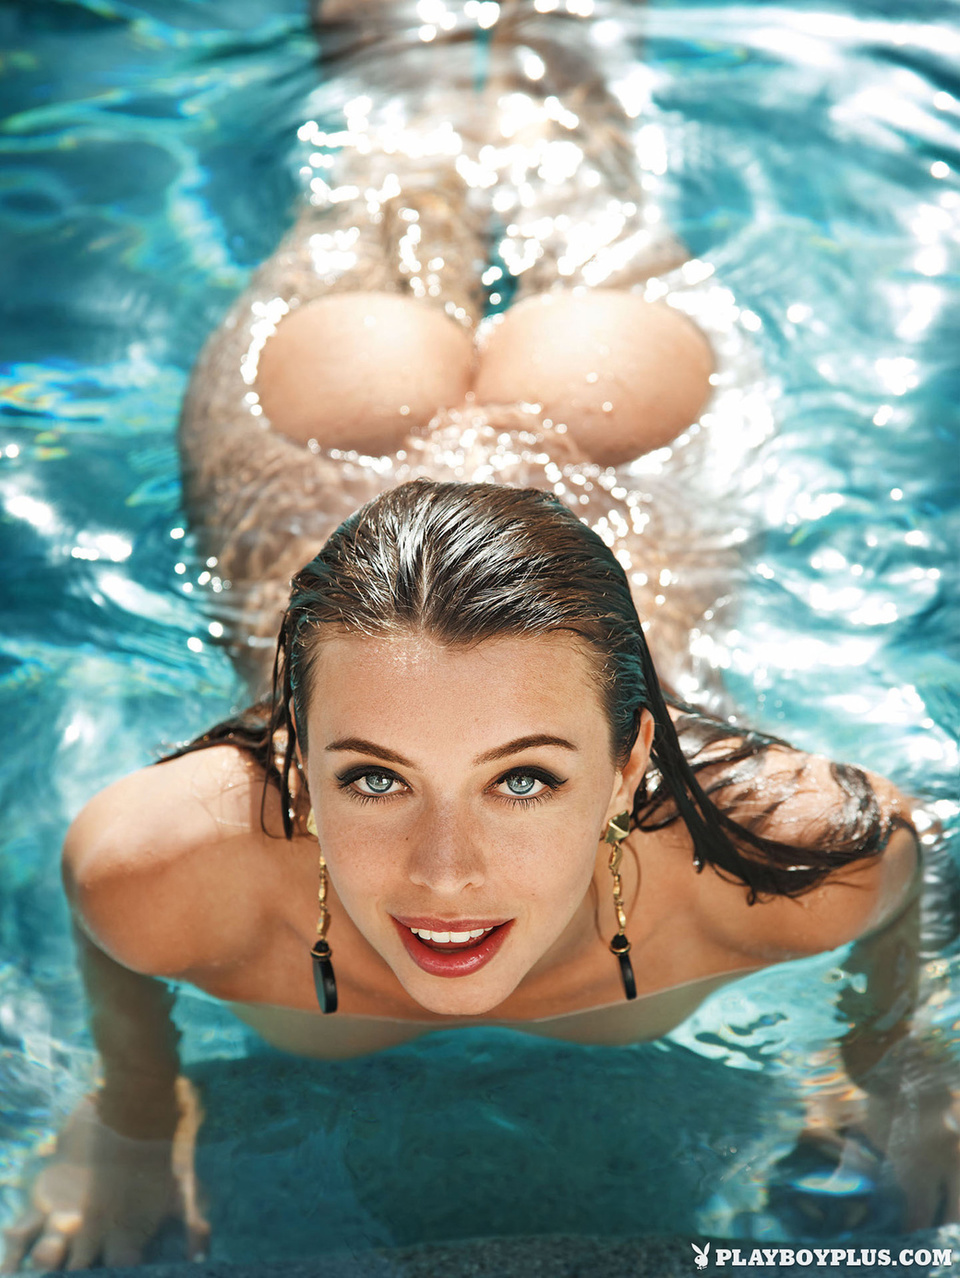 girls-nude-in-pool-wet-photo-mix-vol6-23